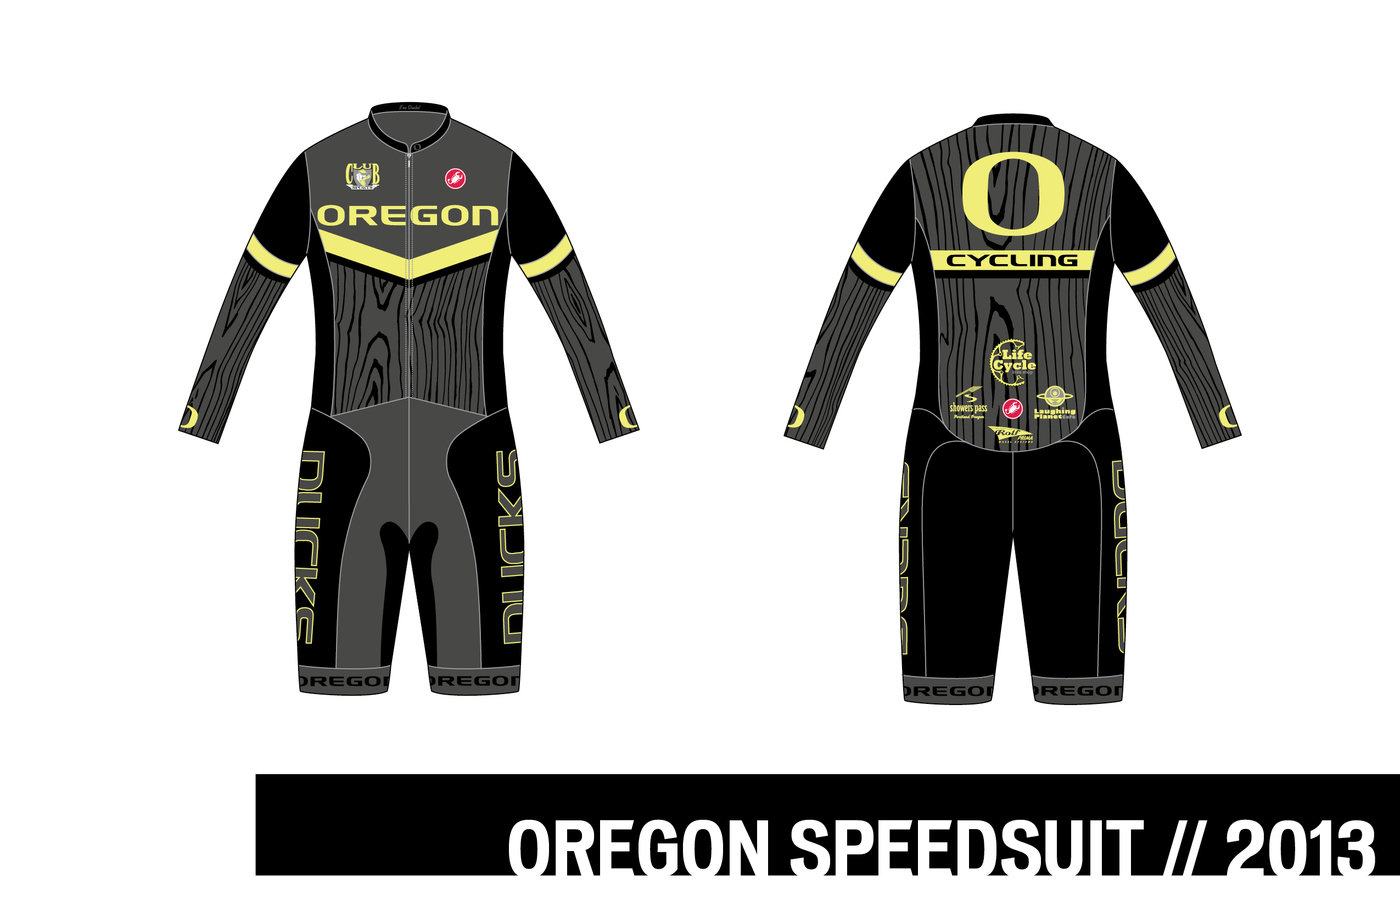 on sale ae9db 8e7a0 Oregon Cycling Kit and Speedsuit by Scott Warneke at ...